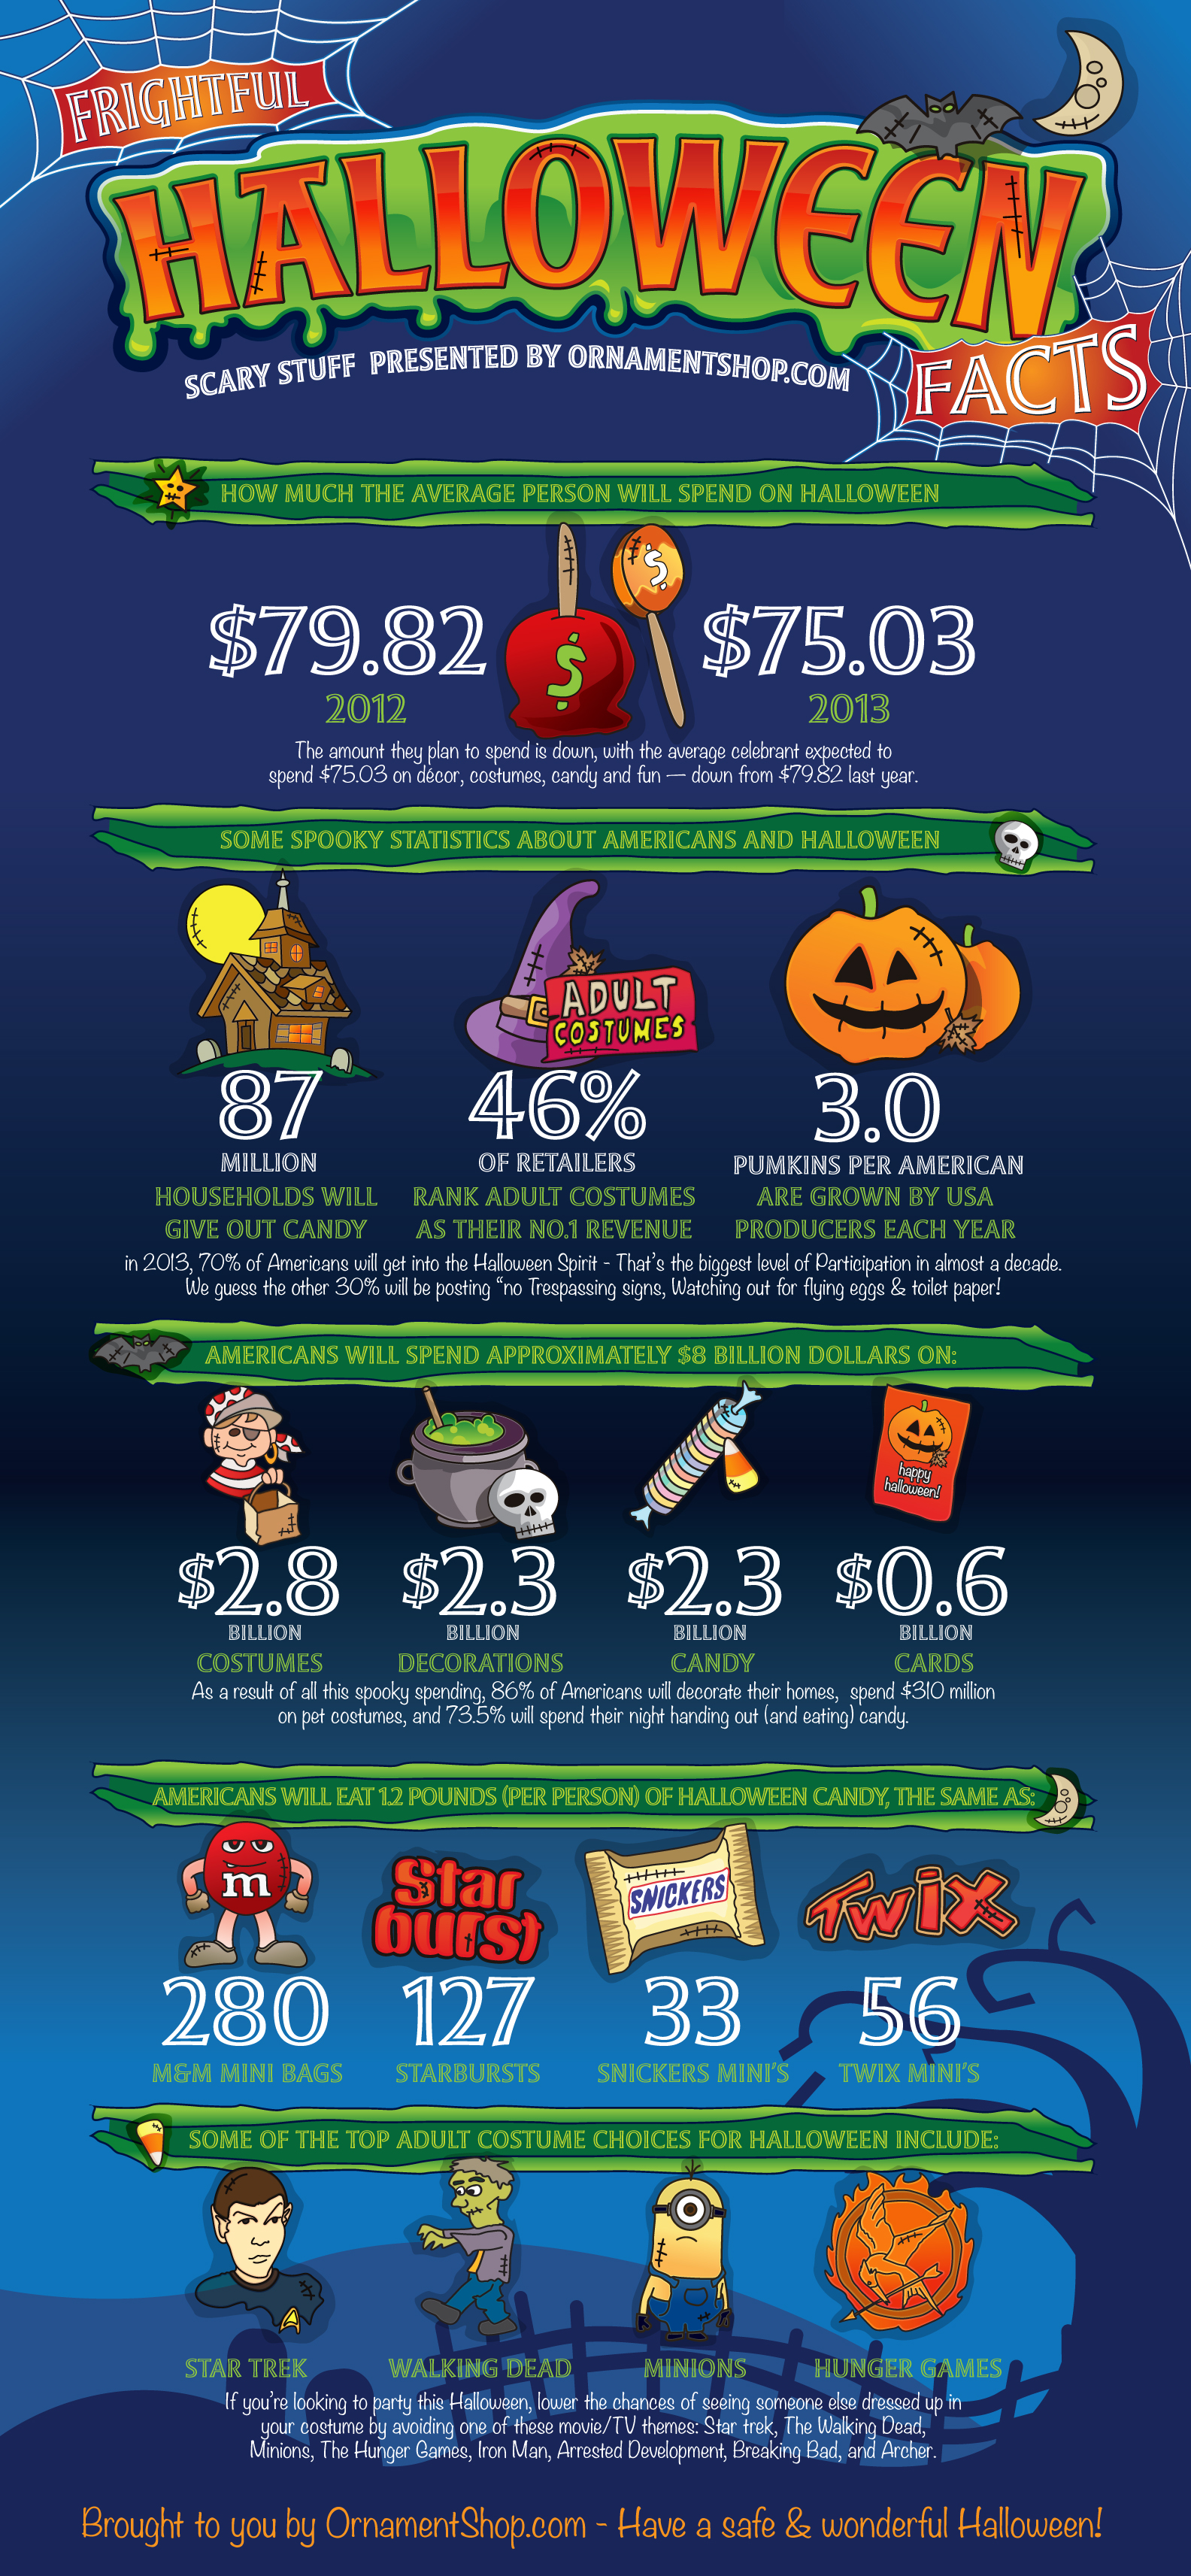 Frightful Halloween Facts]